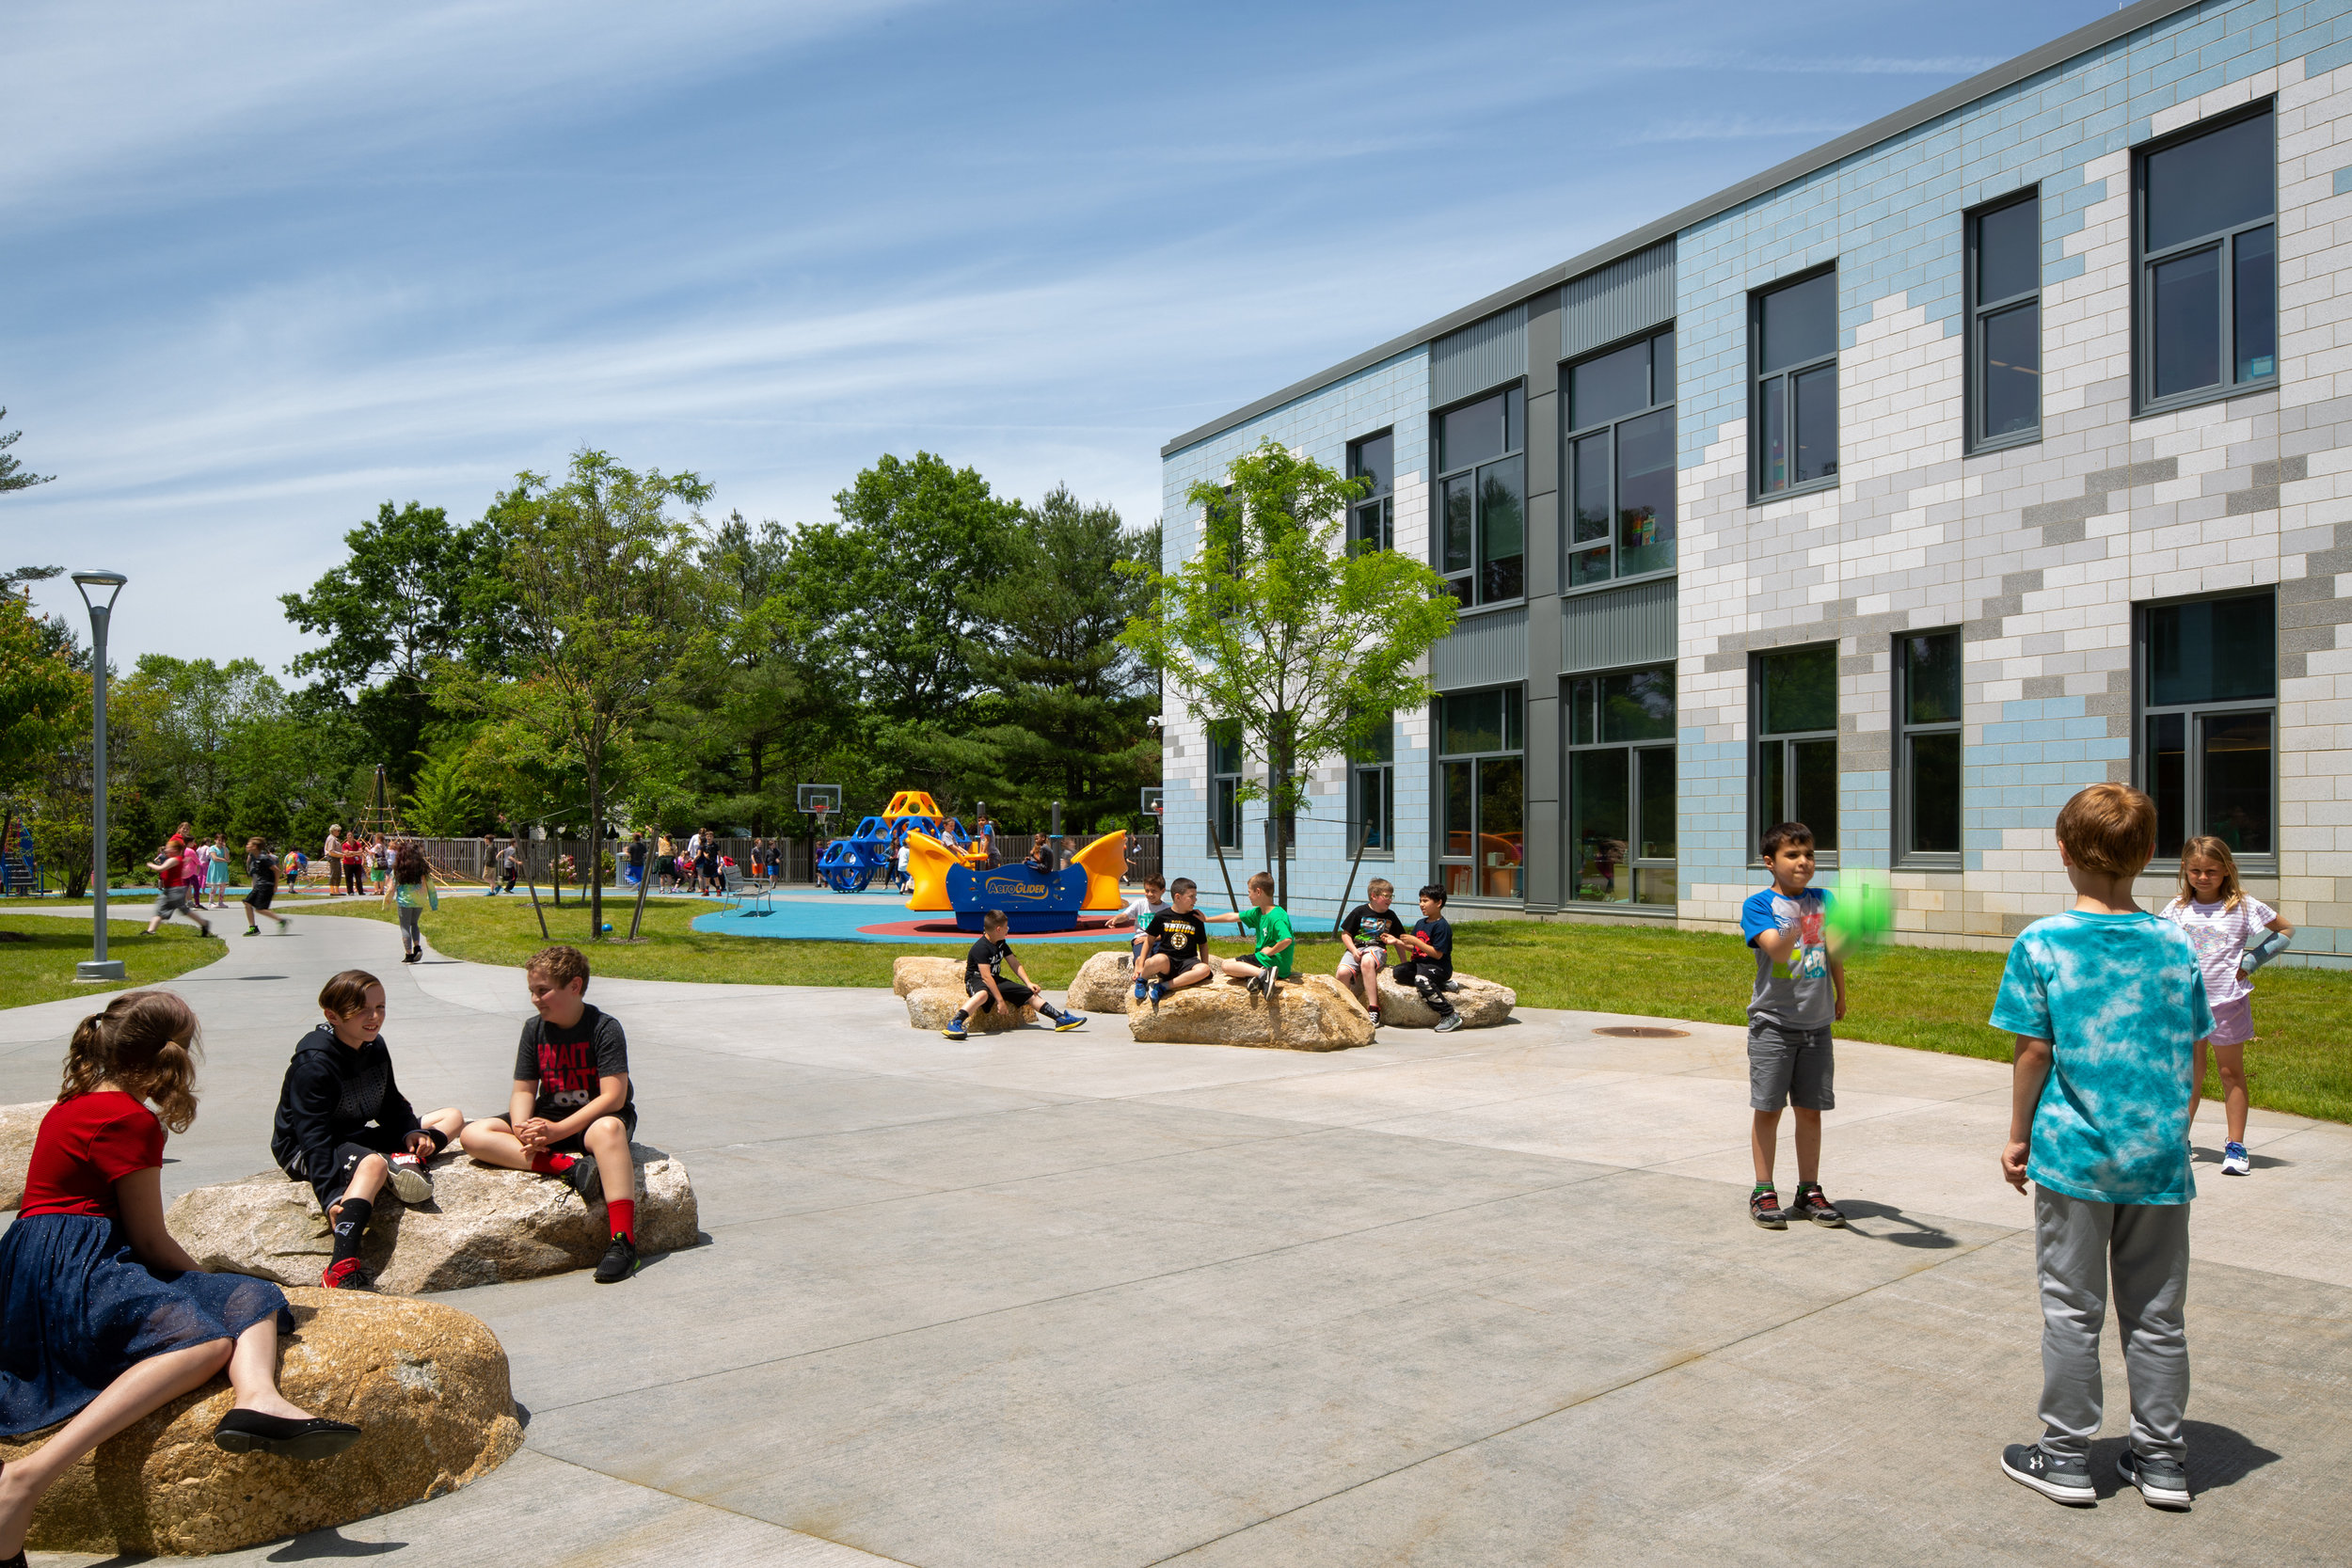 Carver Elementary School Courtyard and Playspaces (Photo by Ed Wonsek)